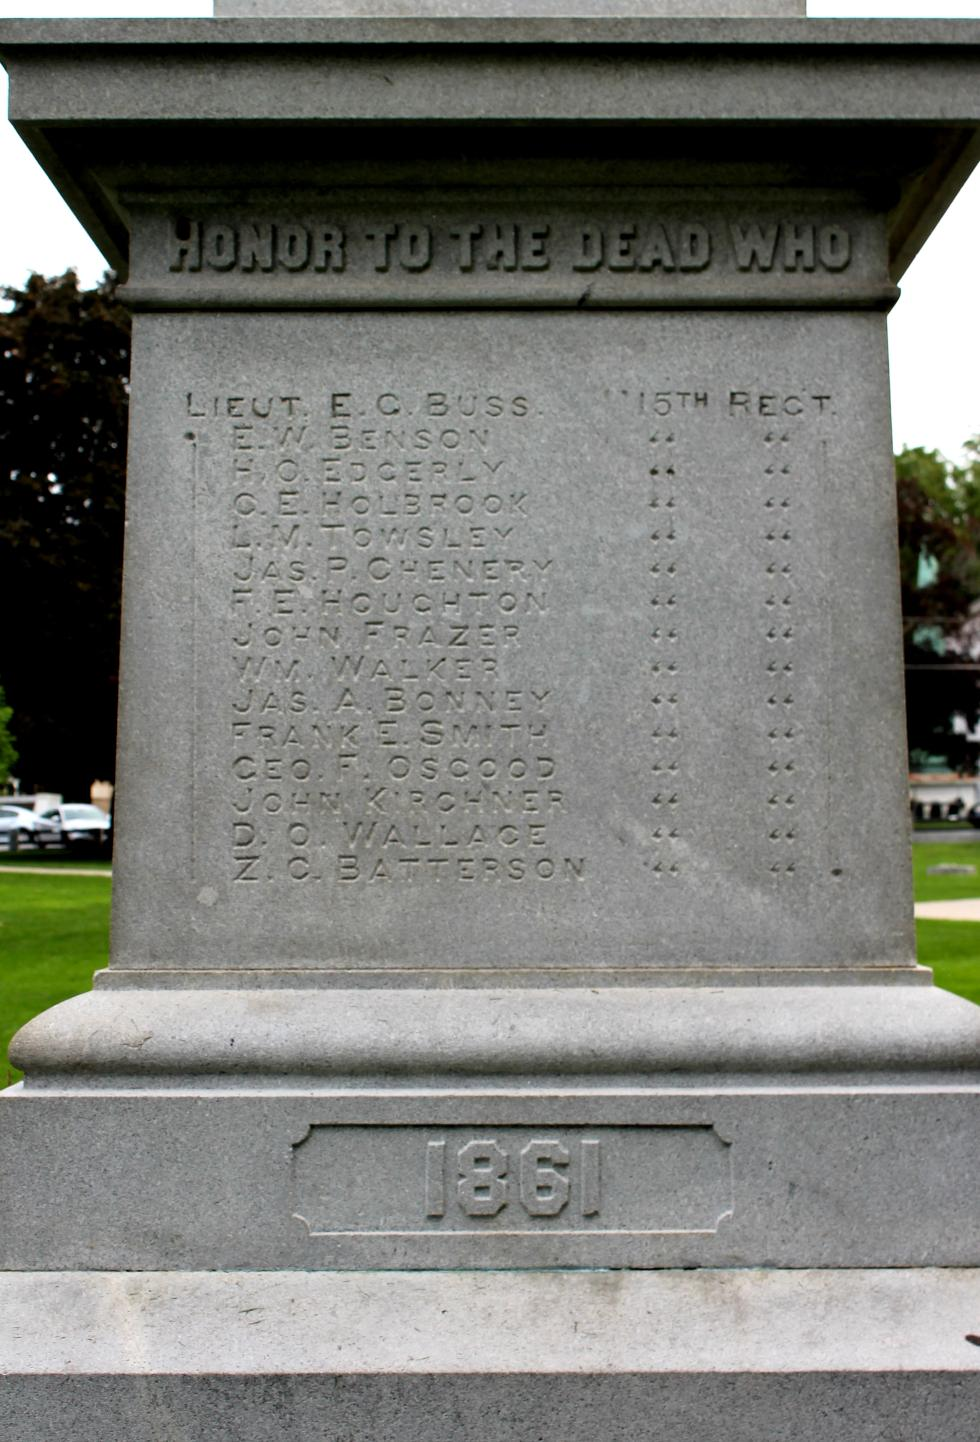 Clinton Massacusetts Civil War Veterans Memorial